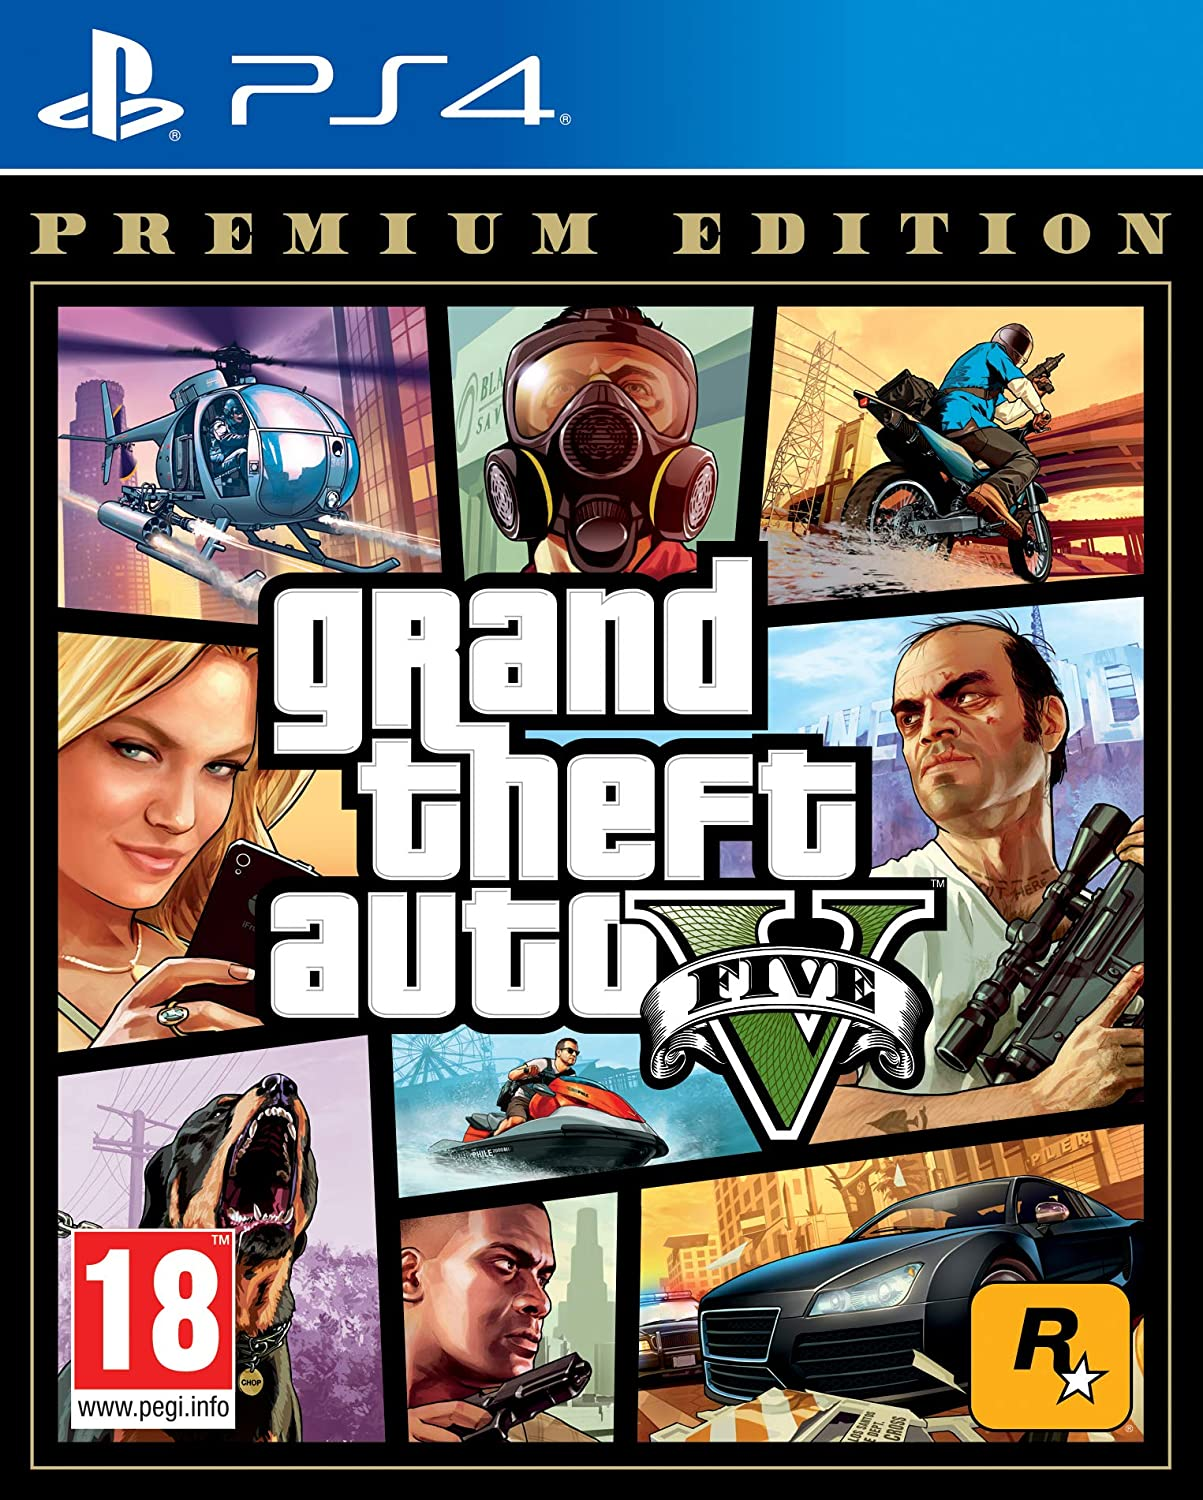 GRAND THEFT AUTO V- best selling ps4 games